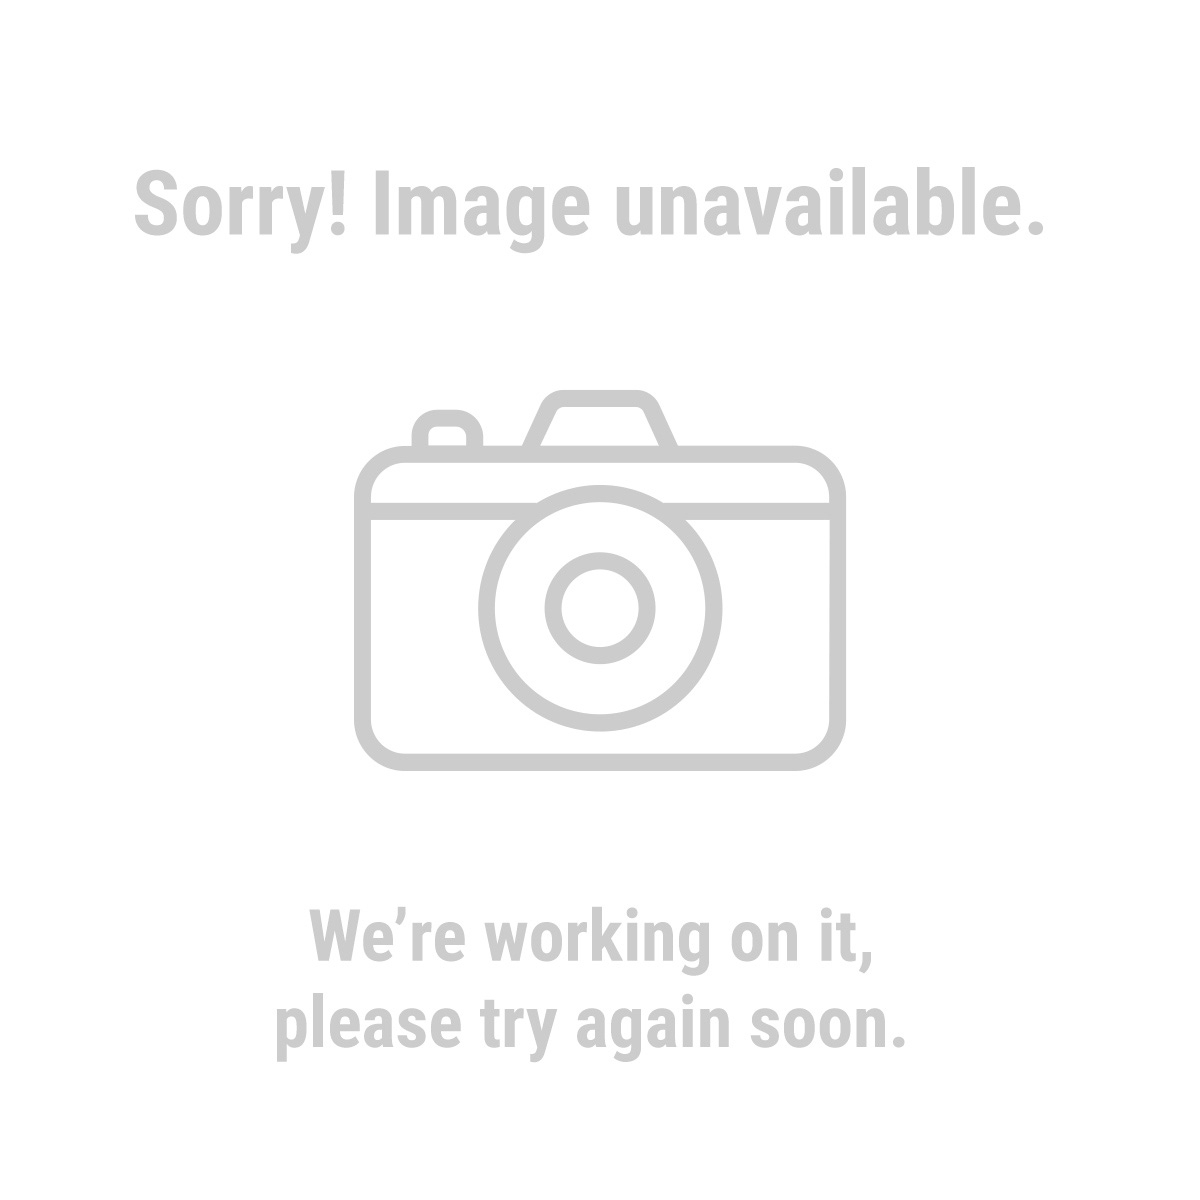 Pittsburgh® 62237 12 in. Quick Release Bar Clamp